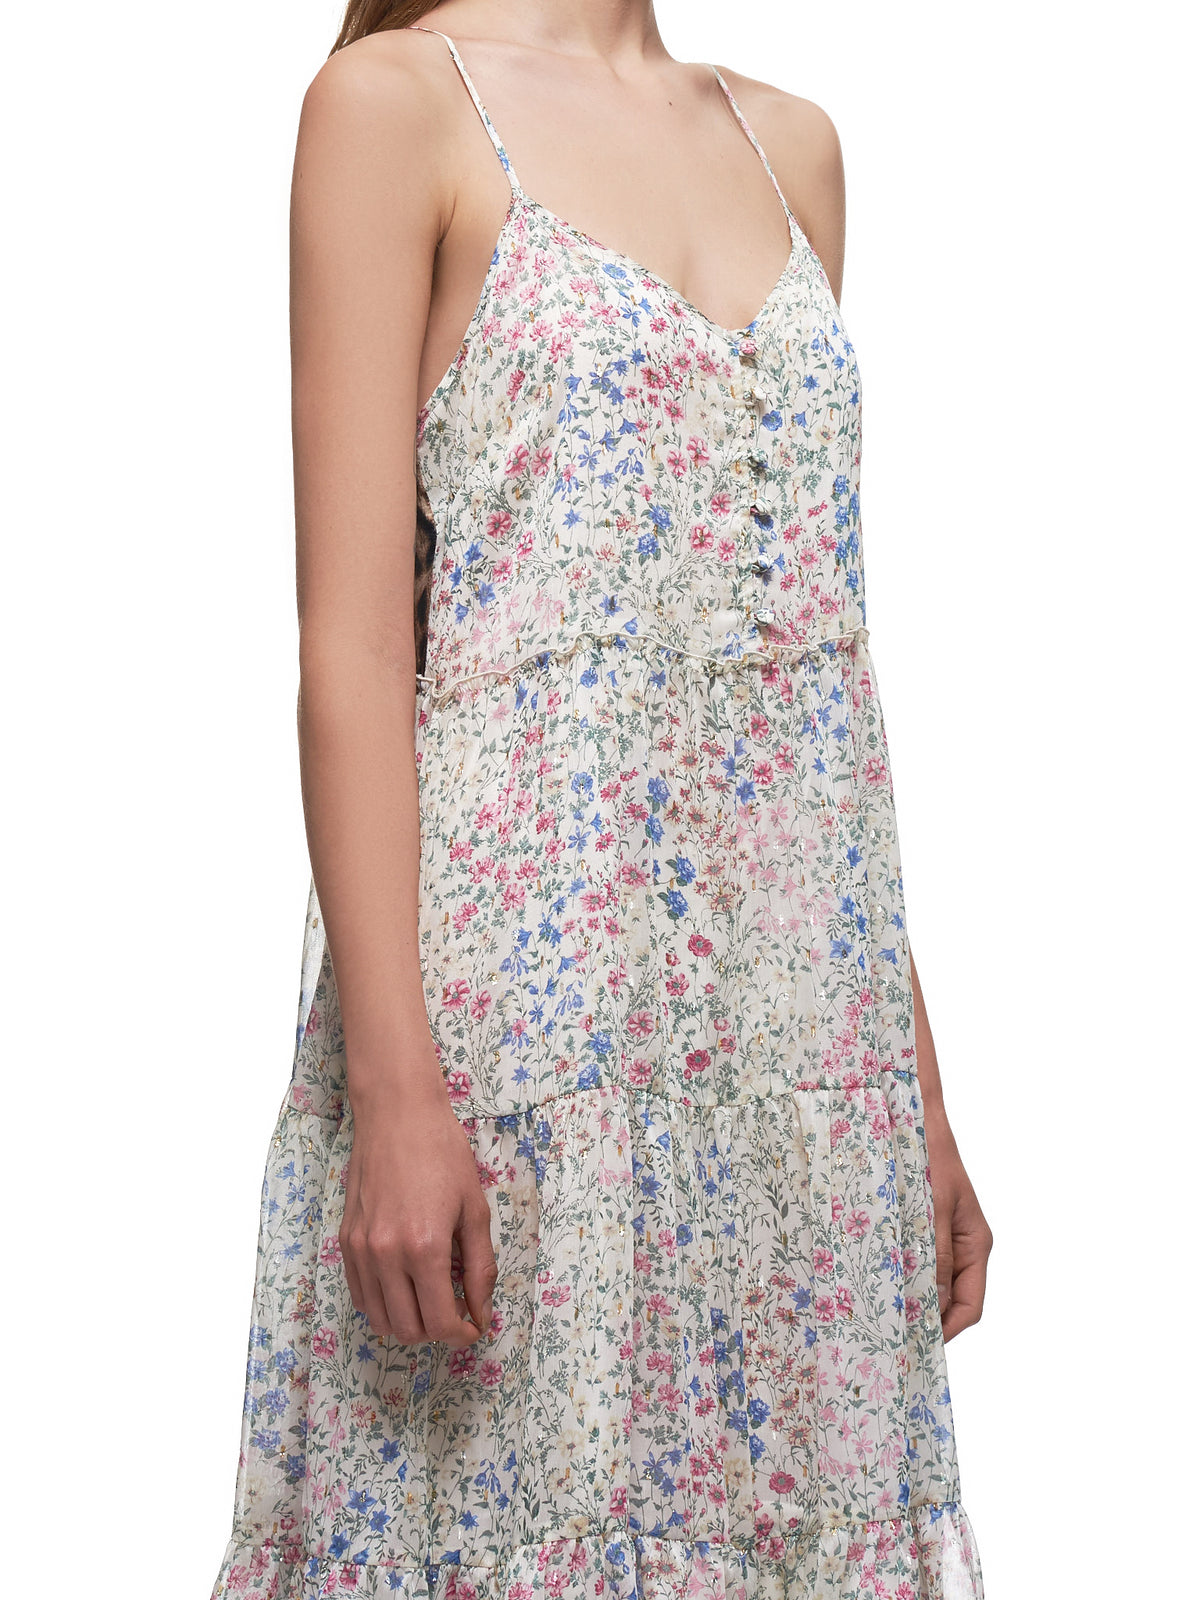 Midi Tiered Slip Dress (7657L-269L-ECRU-FLORAL)